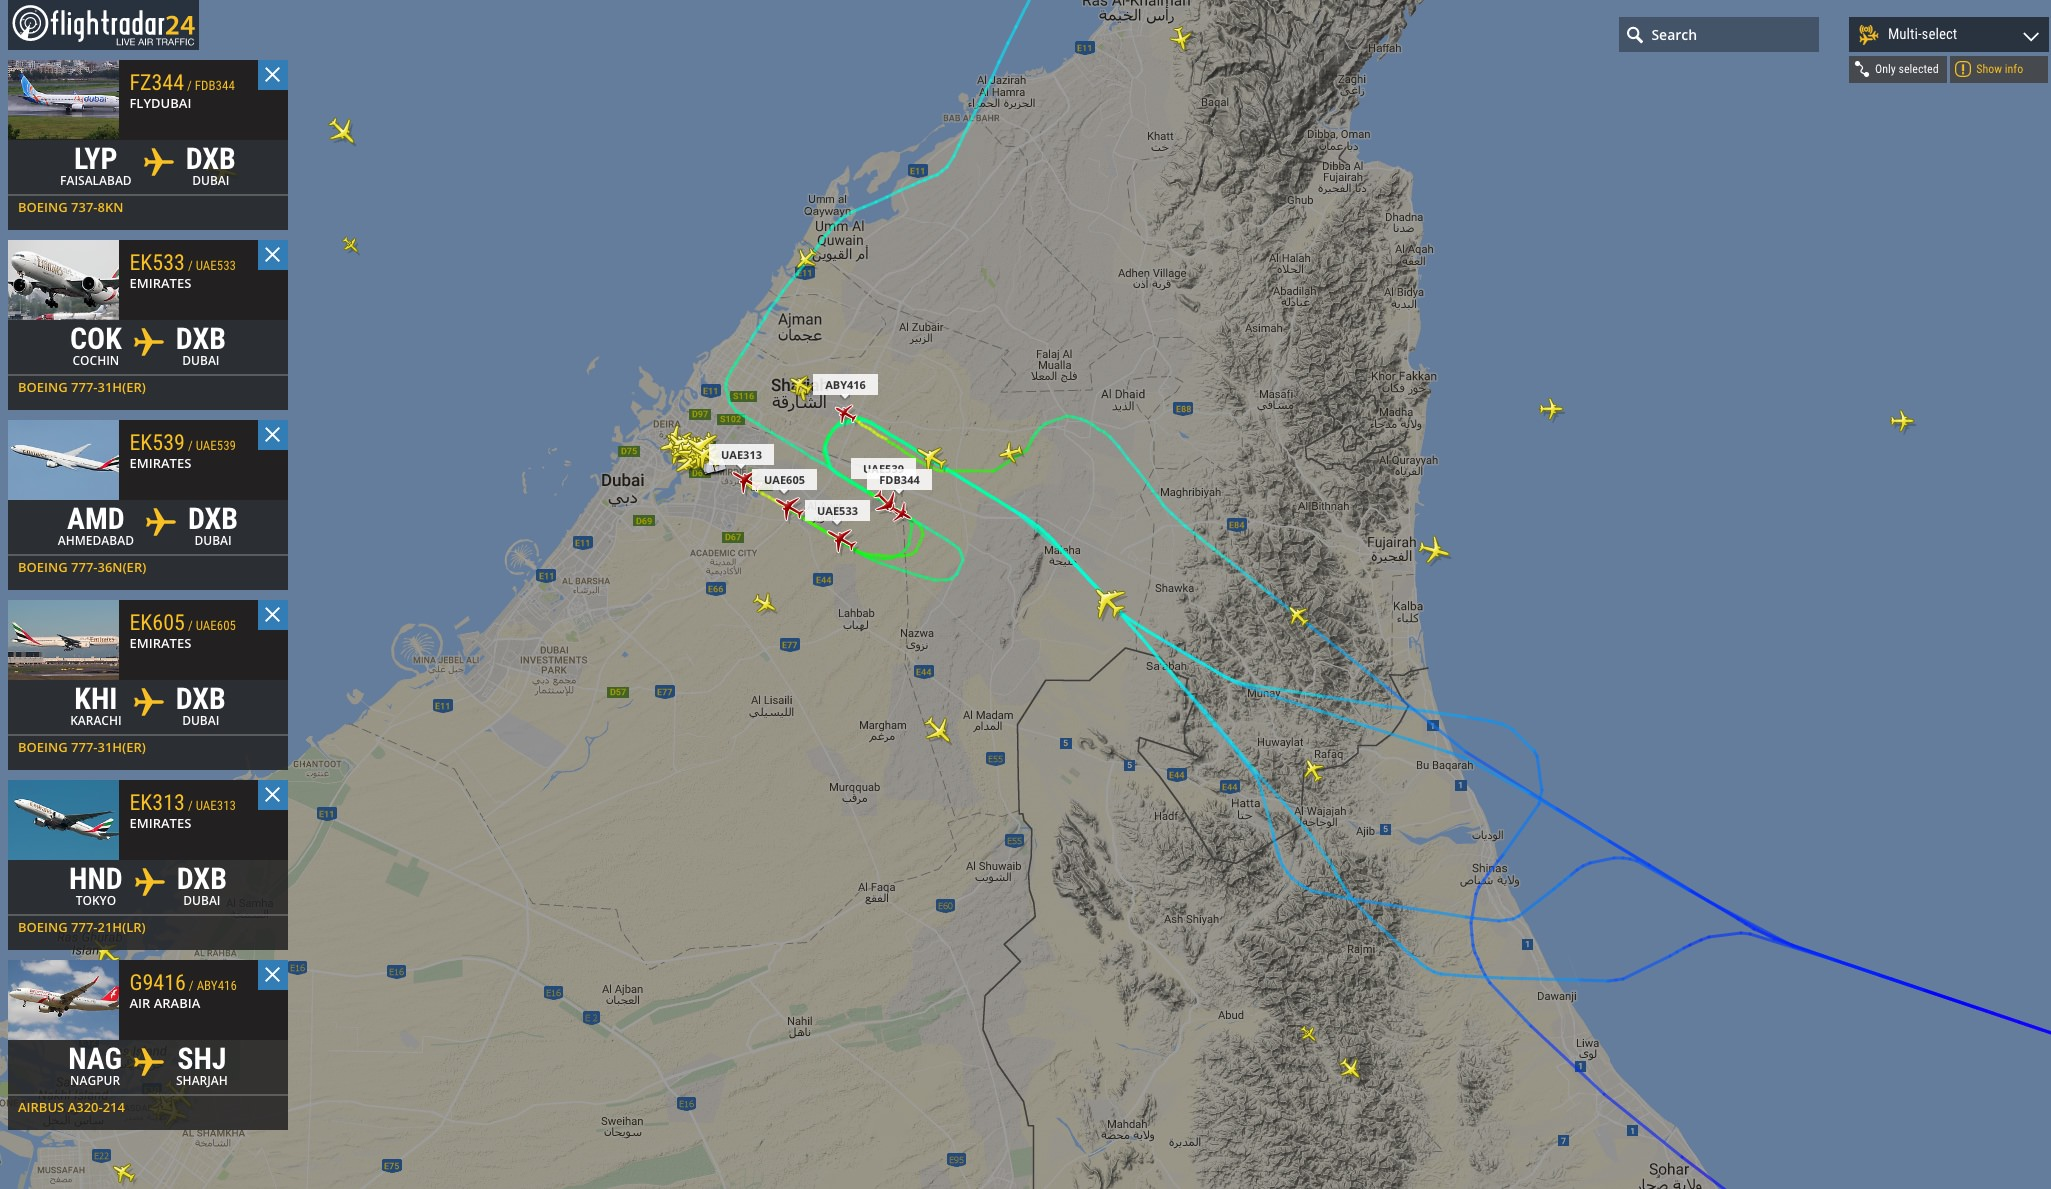 With Multi-select, view up multiple aircraft tracks at the same time